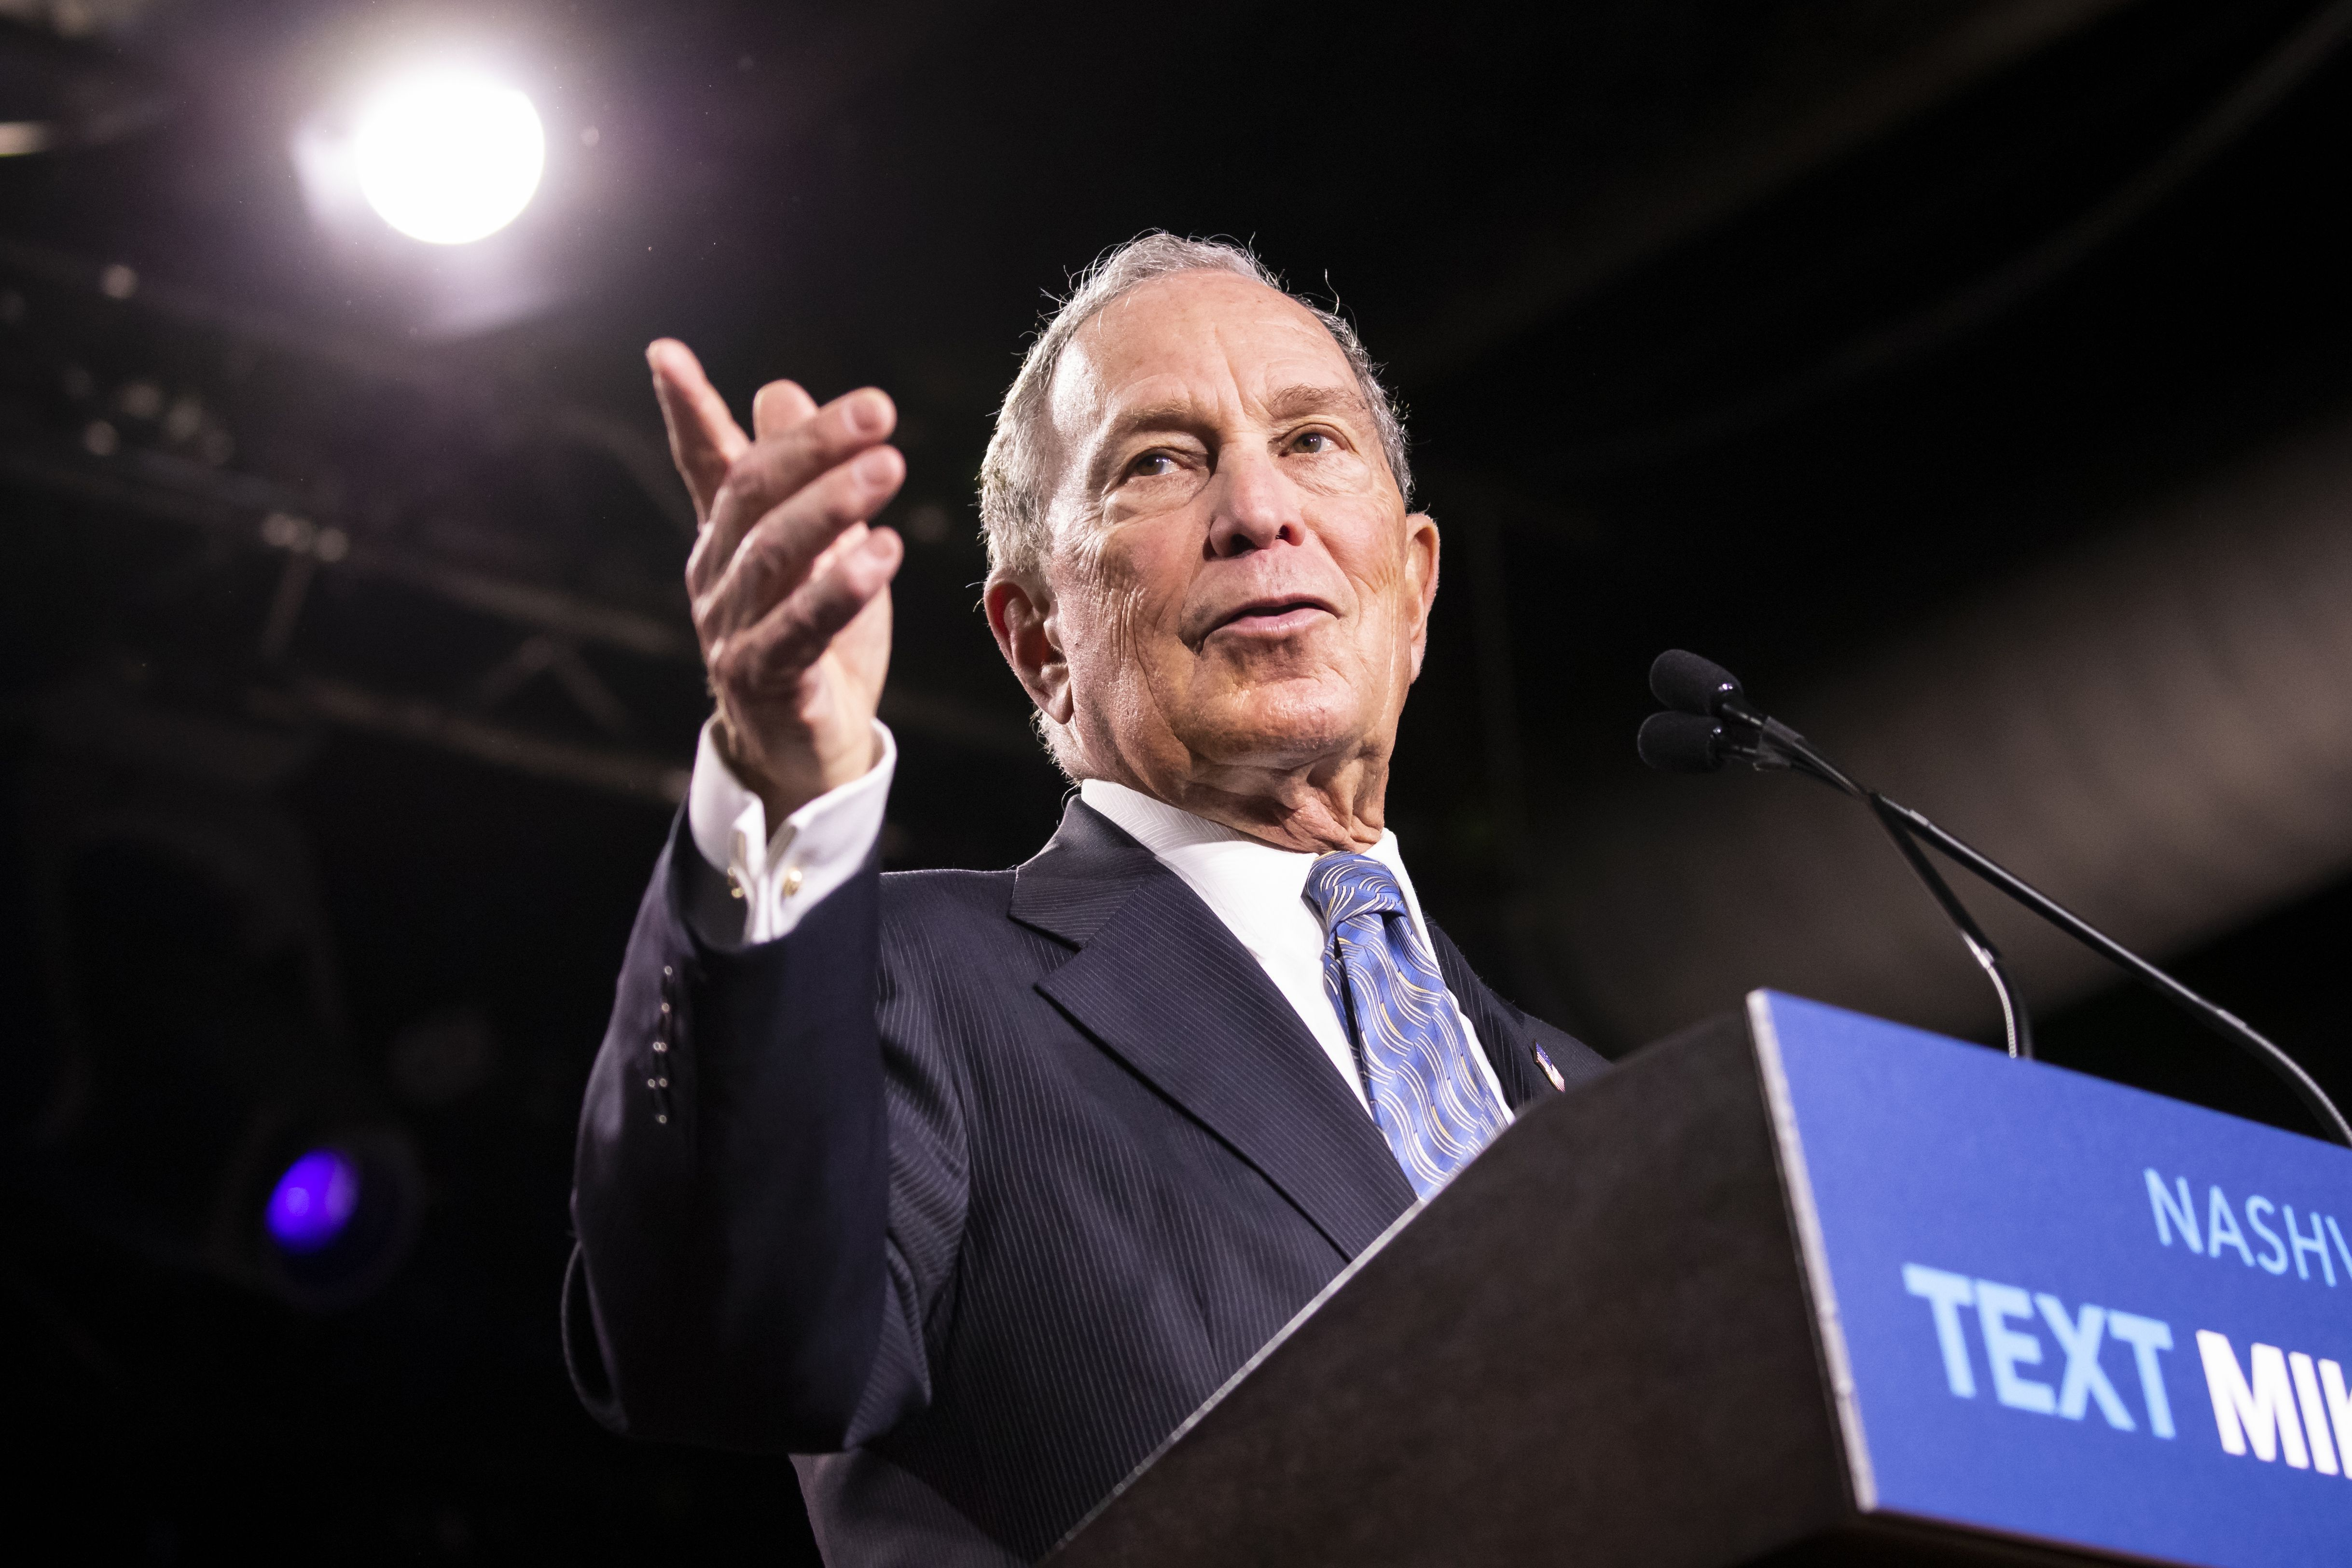 Bloomberg offers to release three women from nondisclosure agreements - Axios